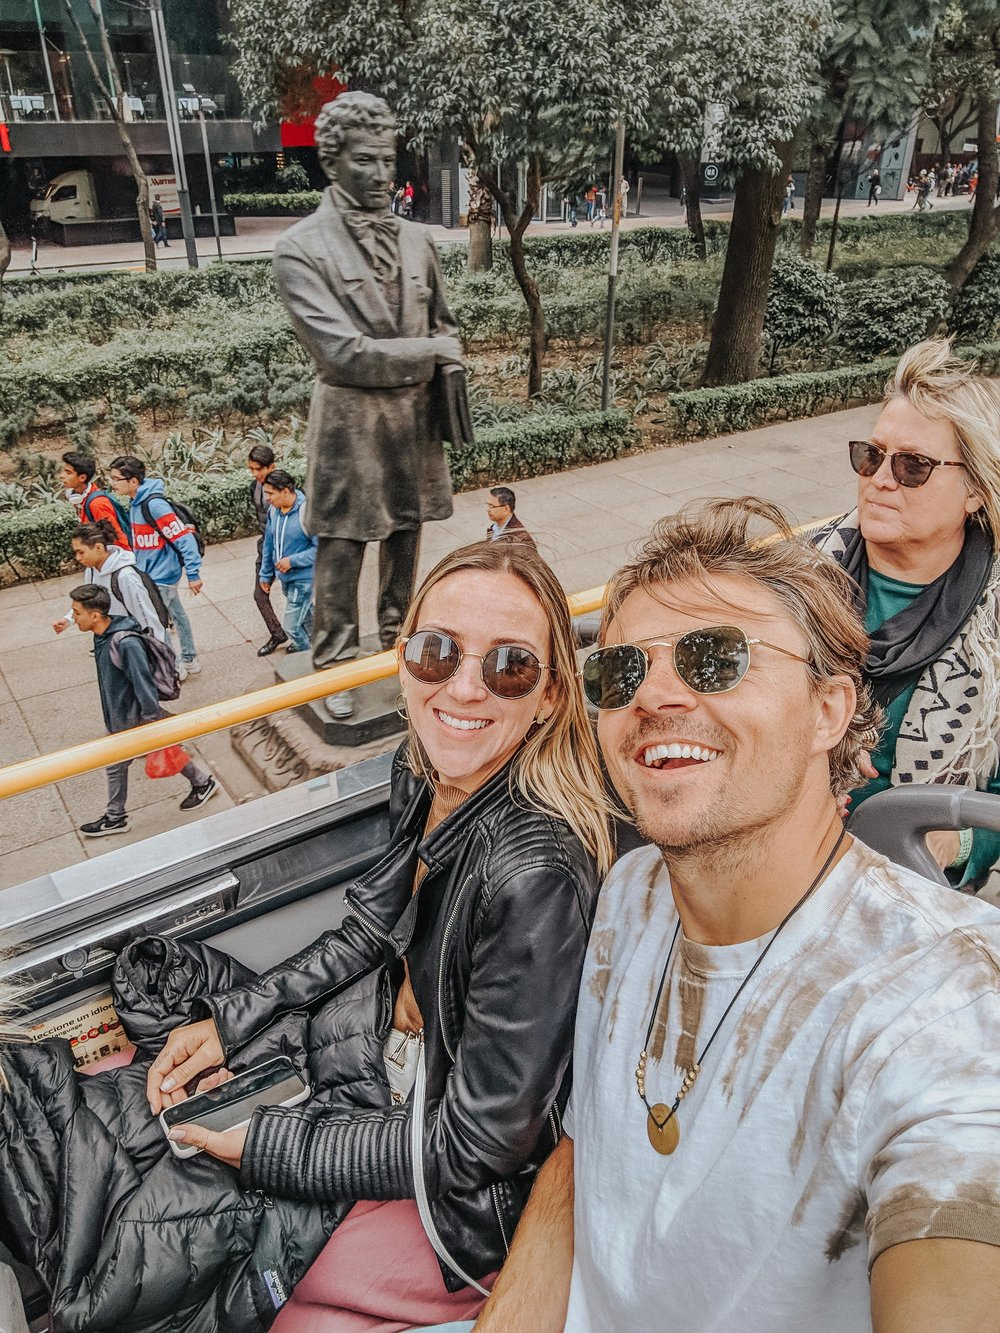 On the CDMX Turibus being total tourists.